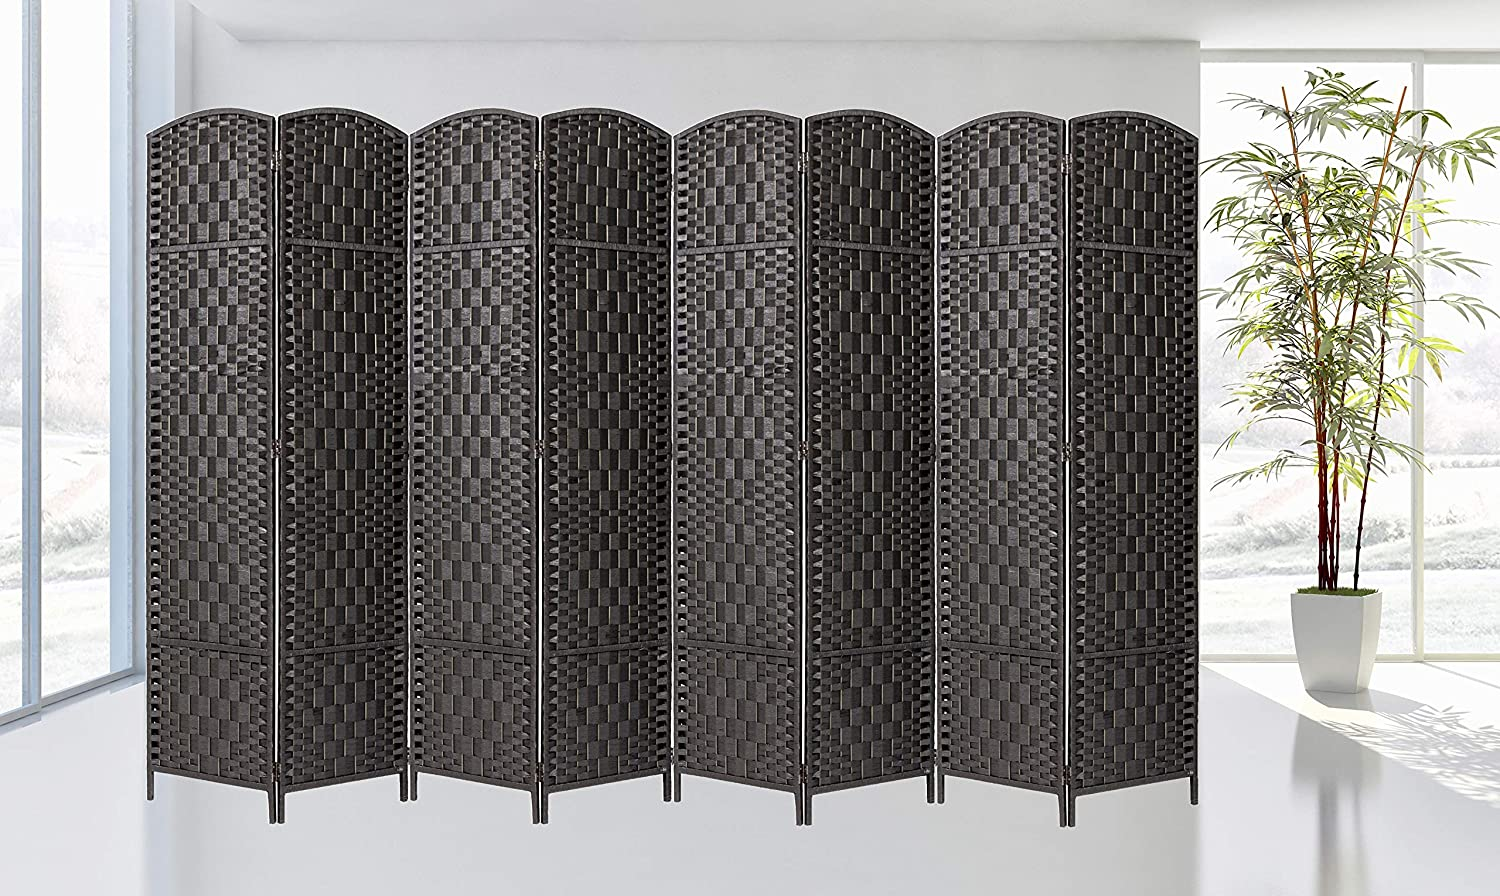 Legacy Decor Room Divider 8 Panels Diamond Weave Bamboo Fiber Privacy Partition Screen, Black Color